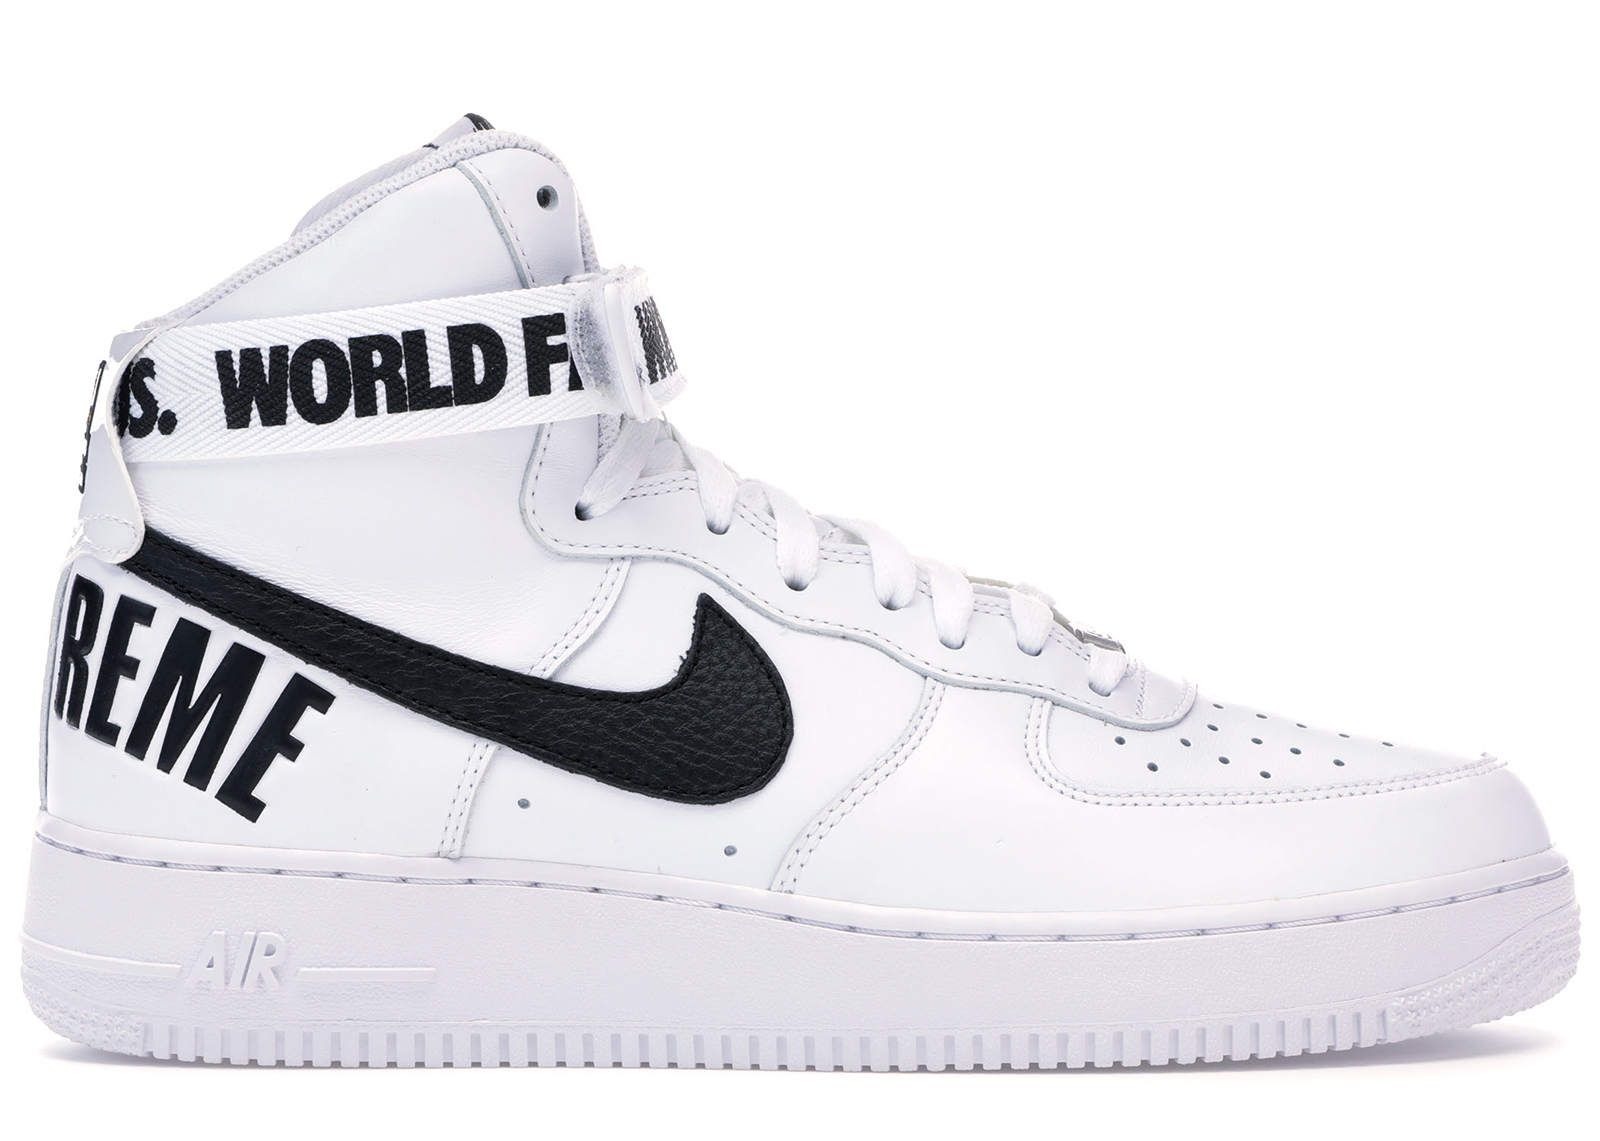 Nike Air Force 1 High Supreme World Famous White